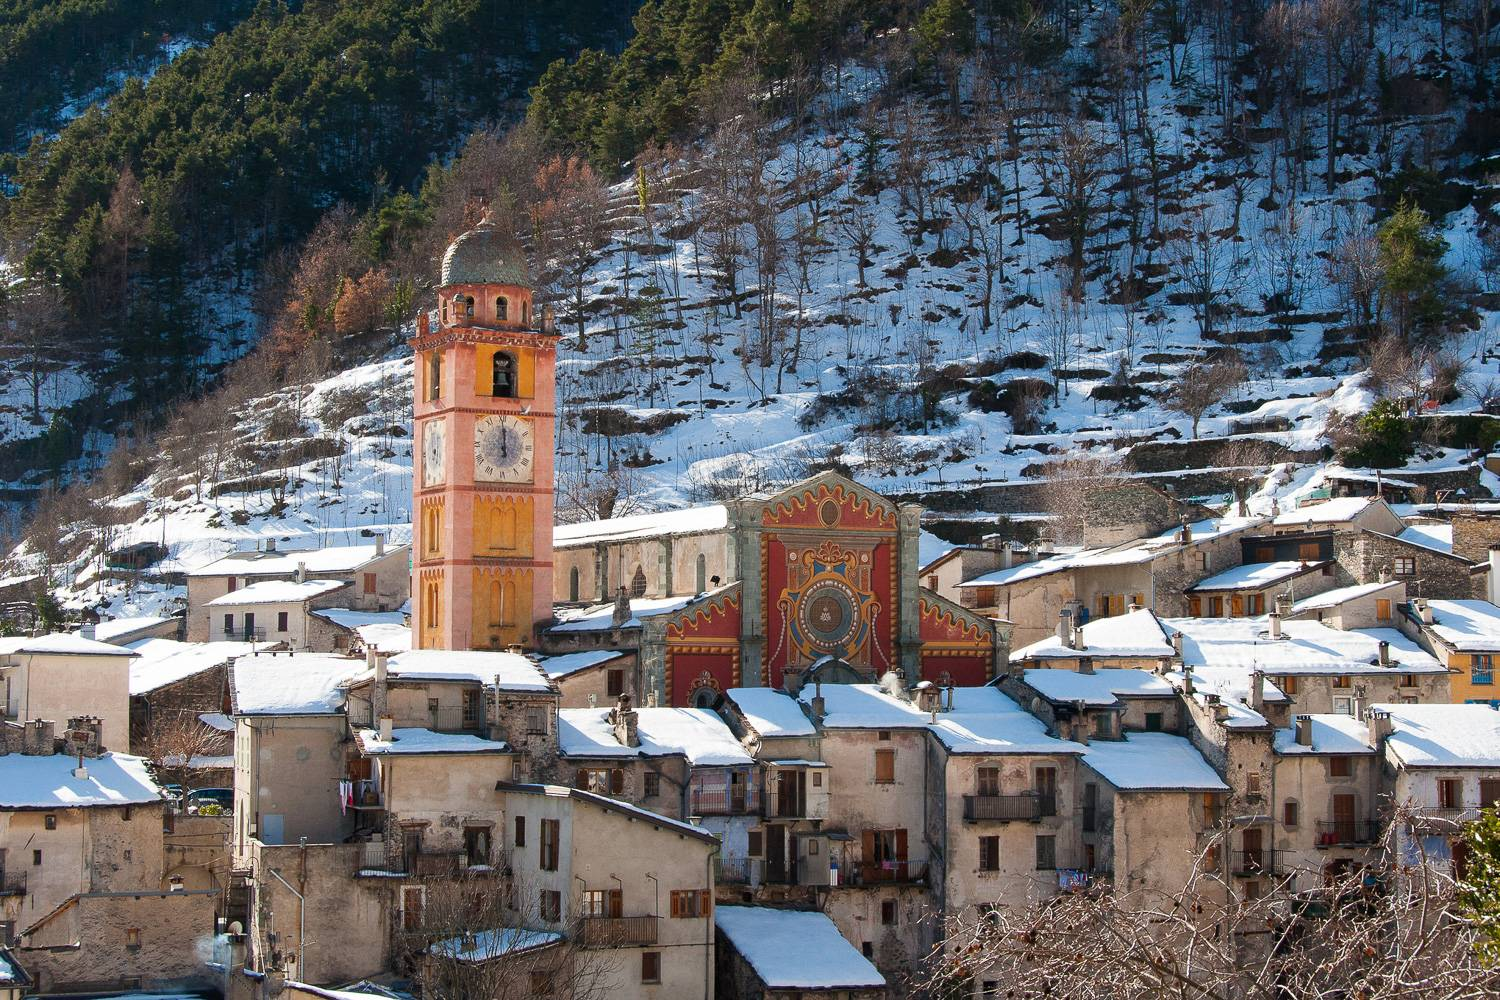 Image of the village of Tende in the French Alps during the winter.